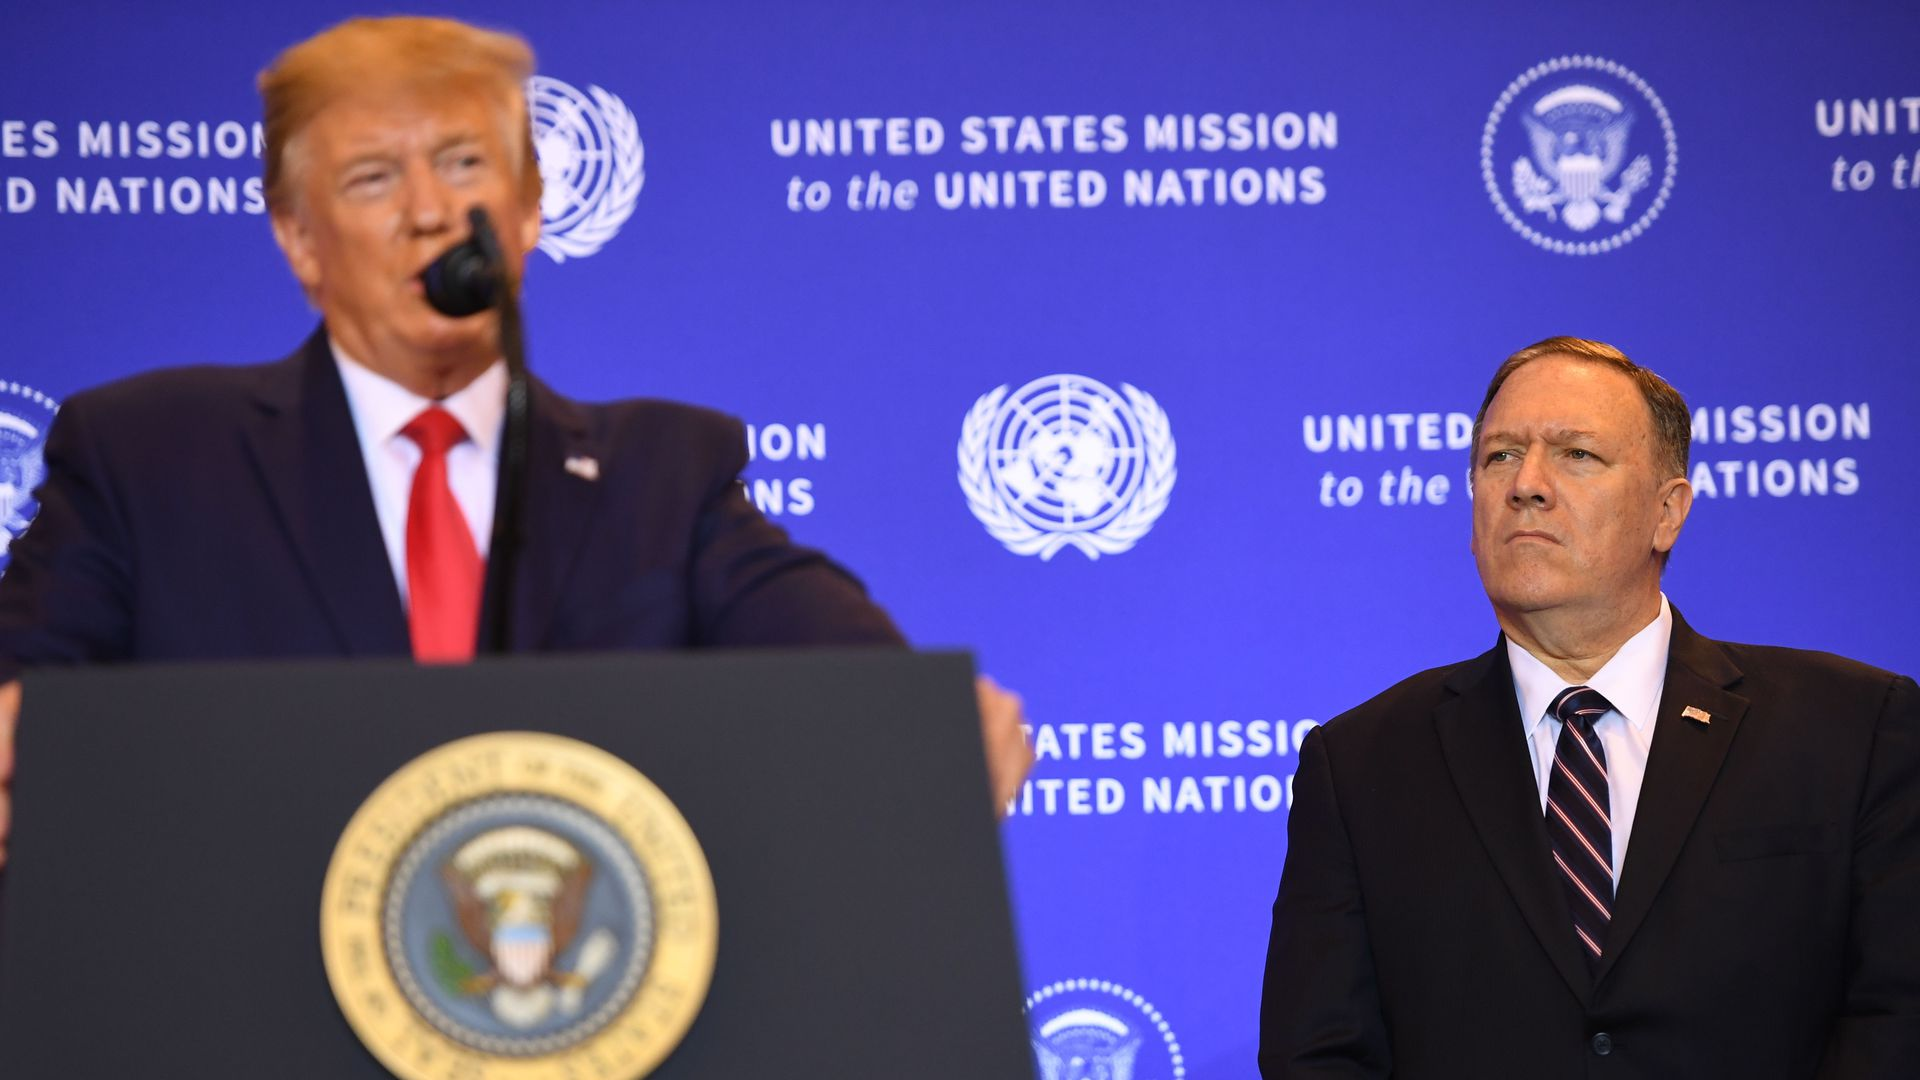 Secretary of State Mike Pompeo (R) listens as President Donald Trump holds a press conference in New York, September 25, 2019, on the sidelines of the United Nations General Assembly.